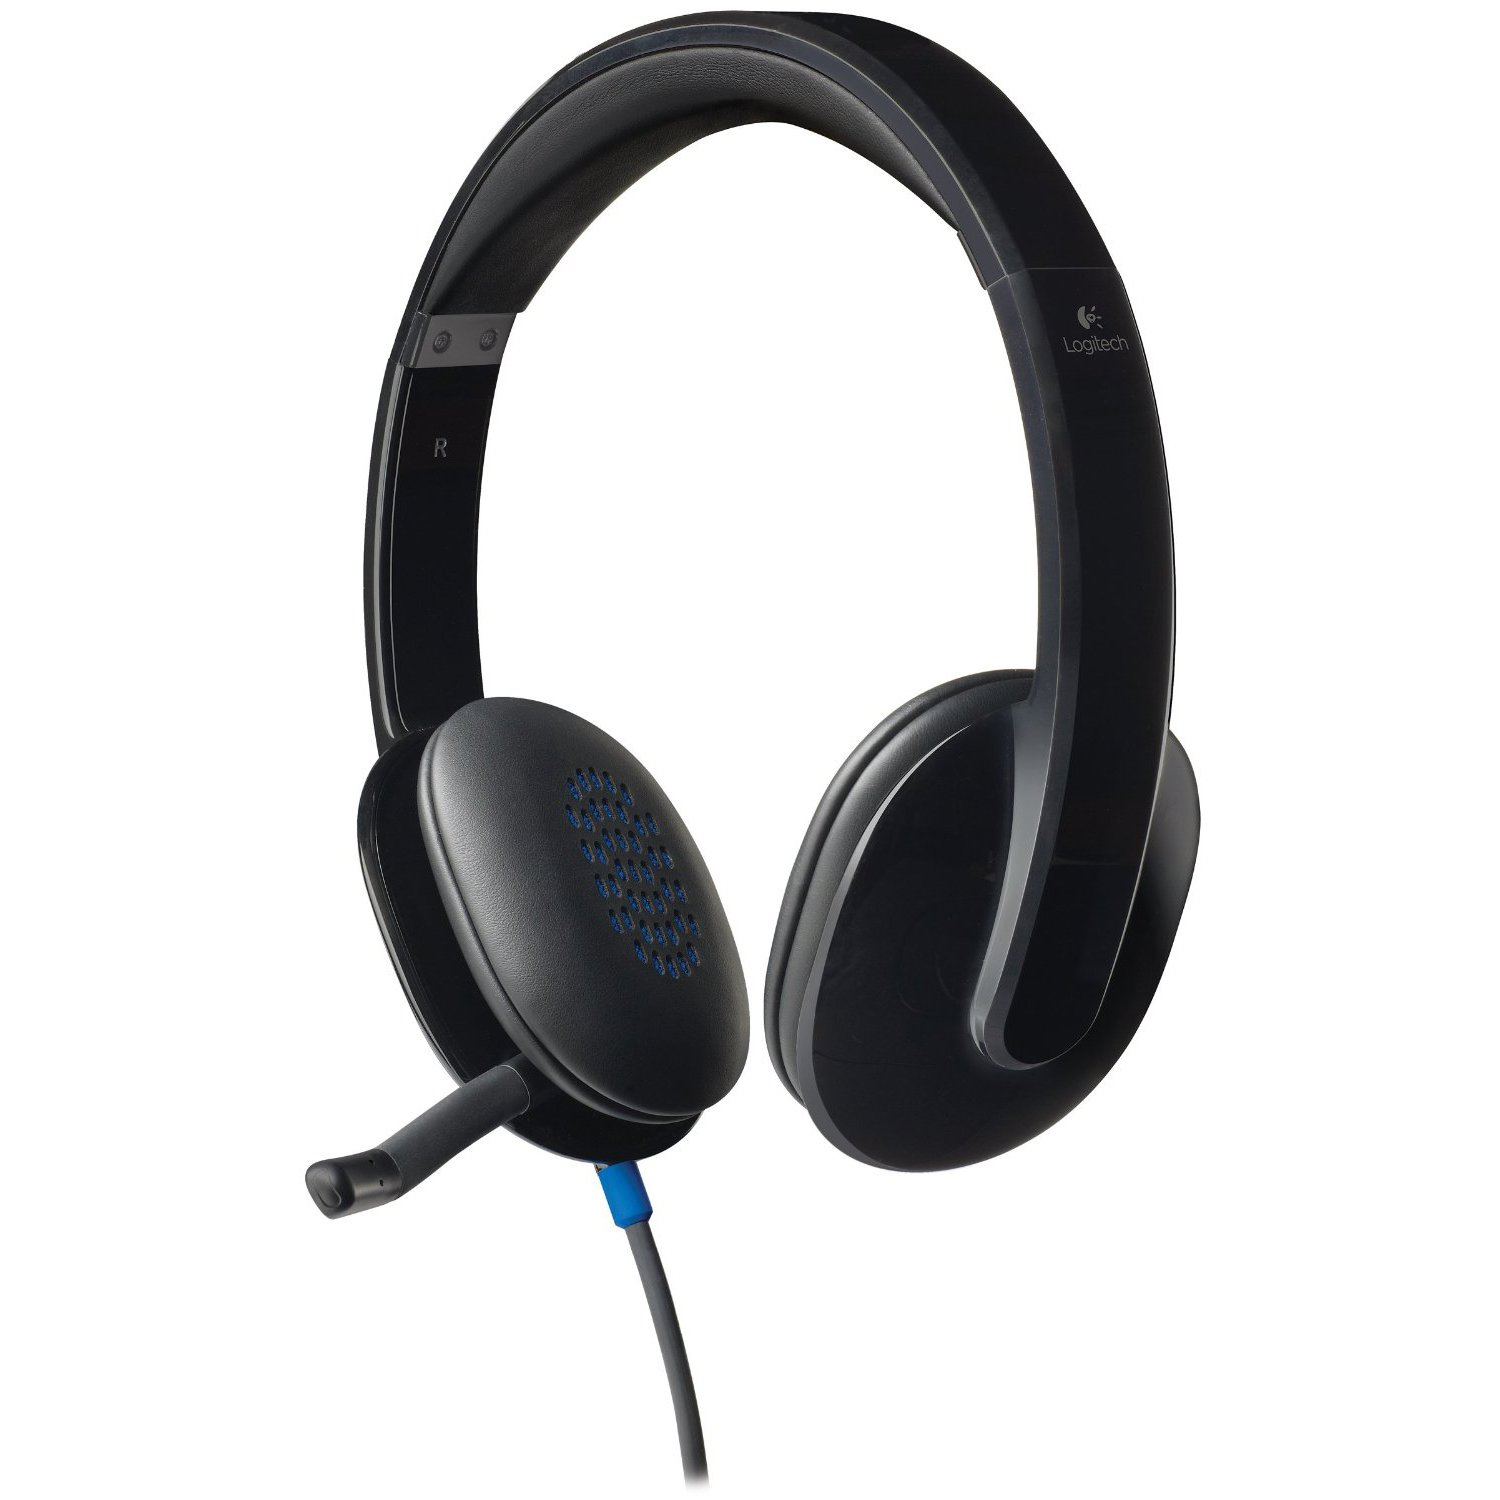 Logitech H540 Plug & Play USB Wired Stereo Headset w/Boom Microphone - Black (Certified Refurbished)